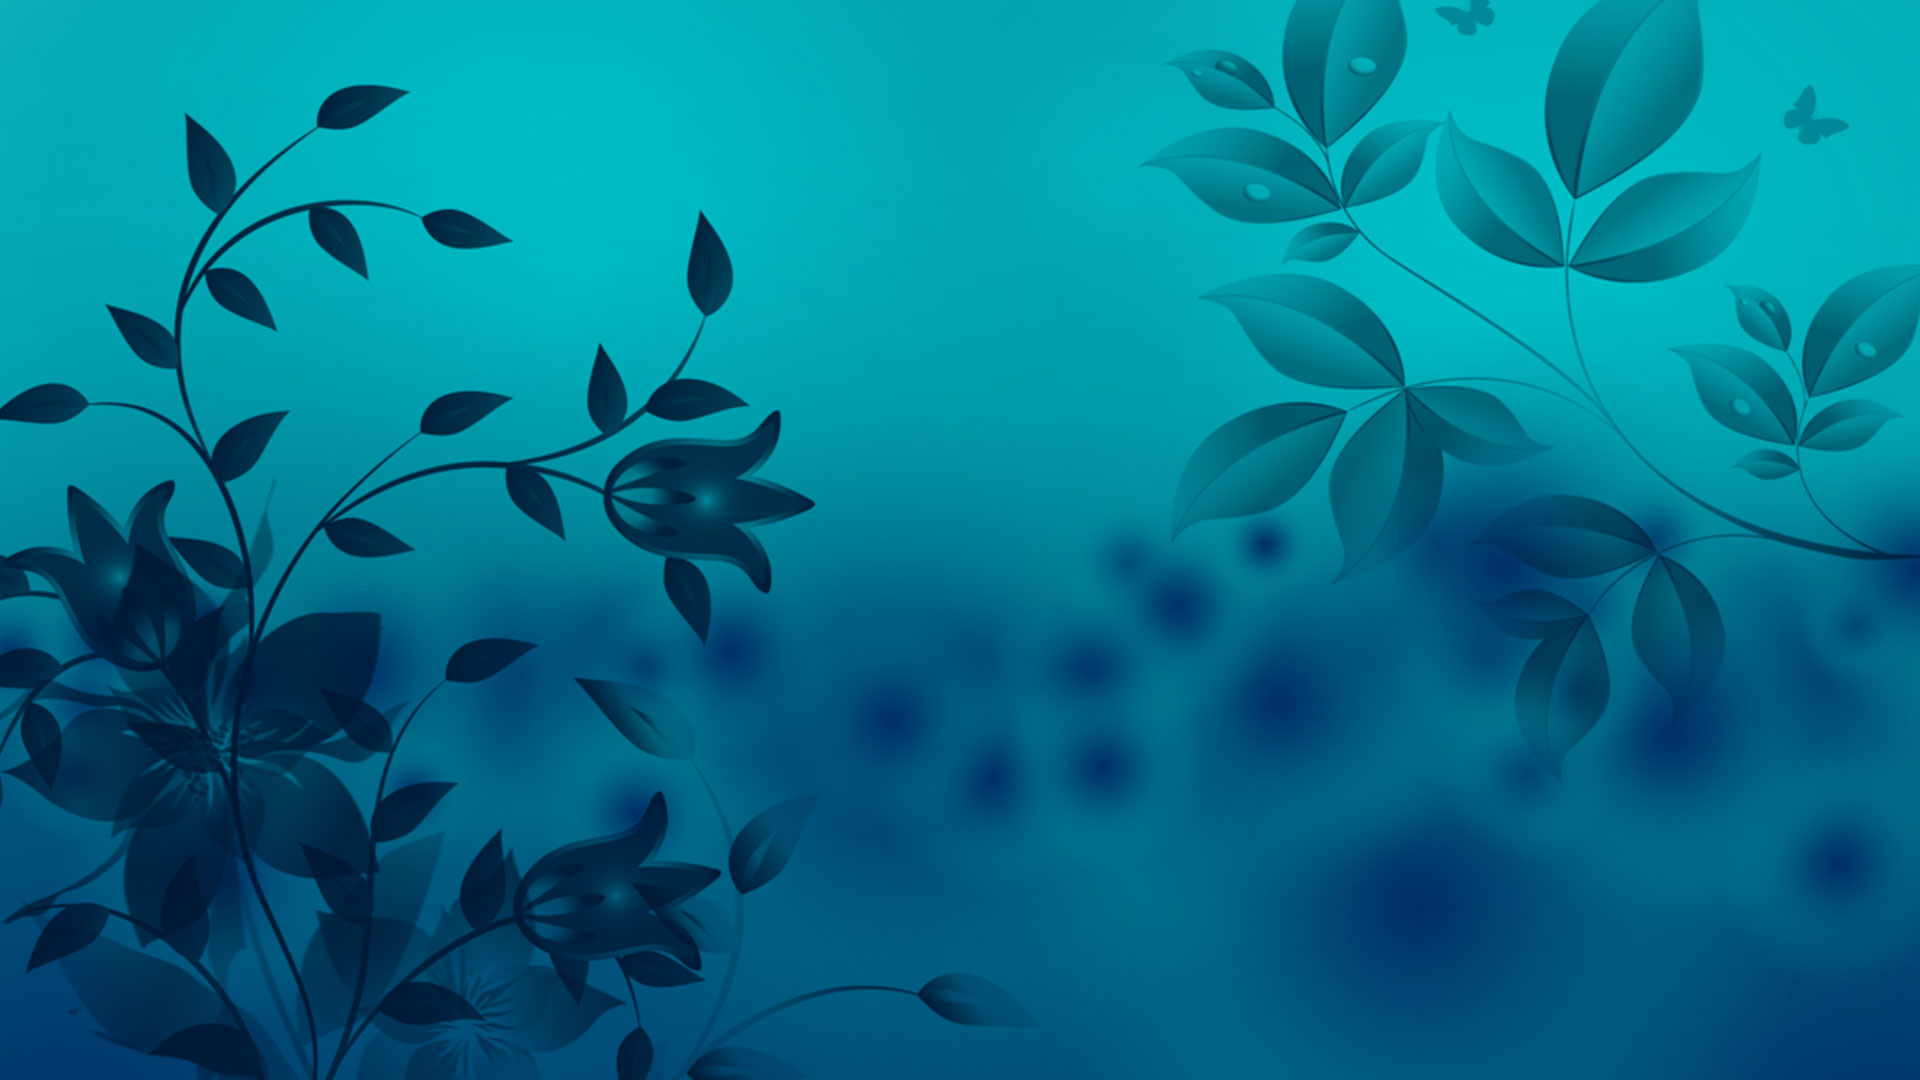 mistique blue flower background